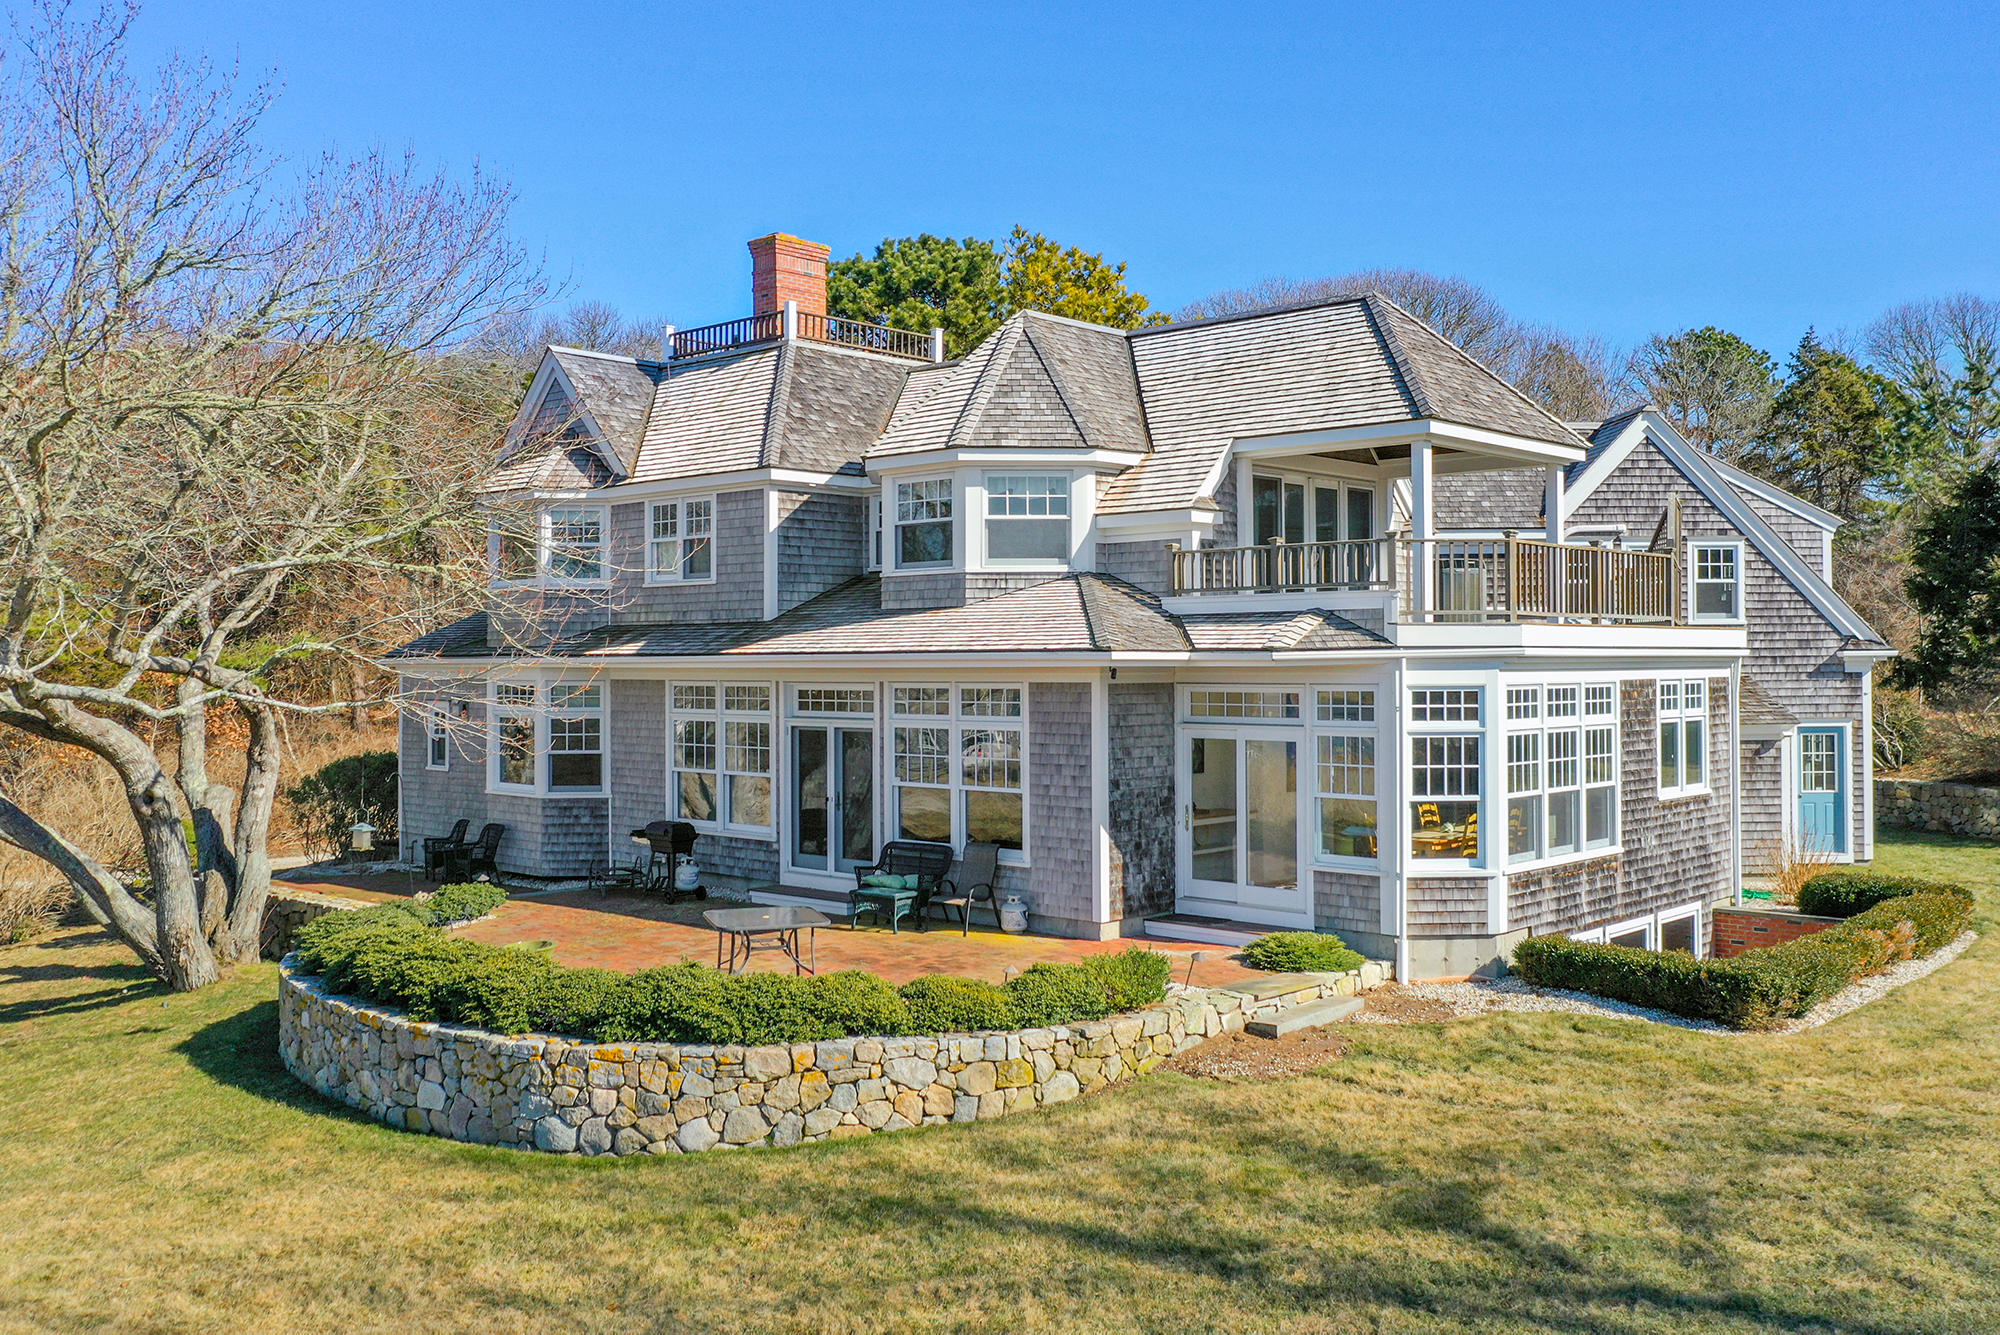 click to view more details 620 Orleans Road, North Chatham, MA 02650